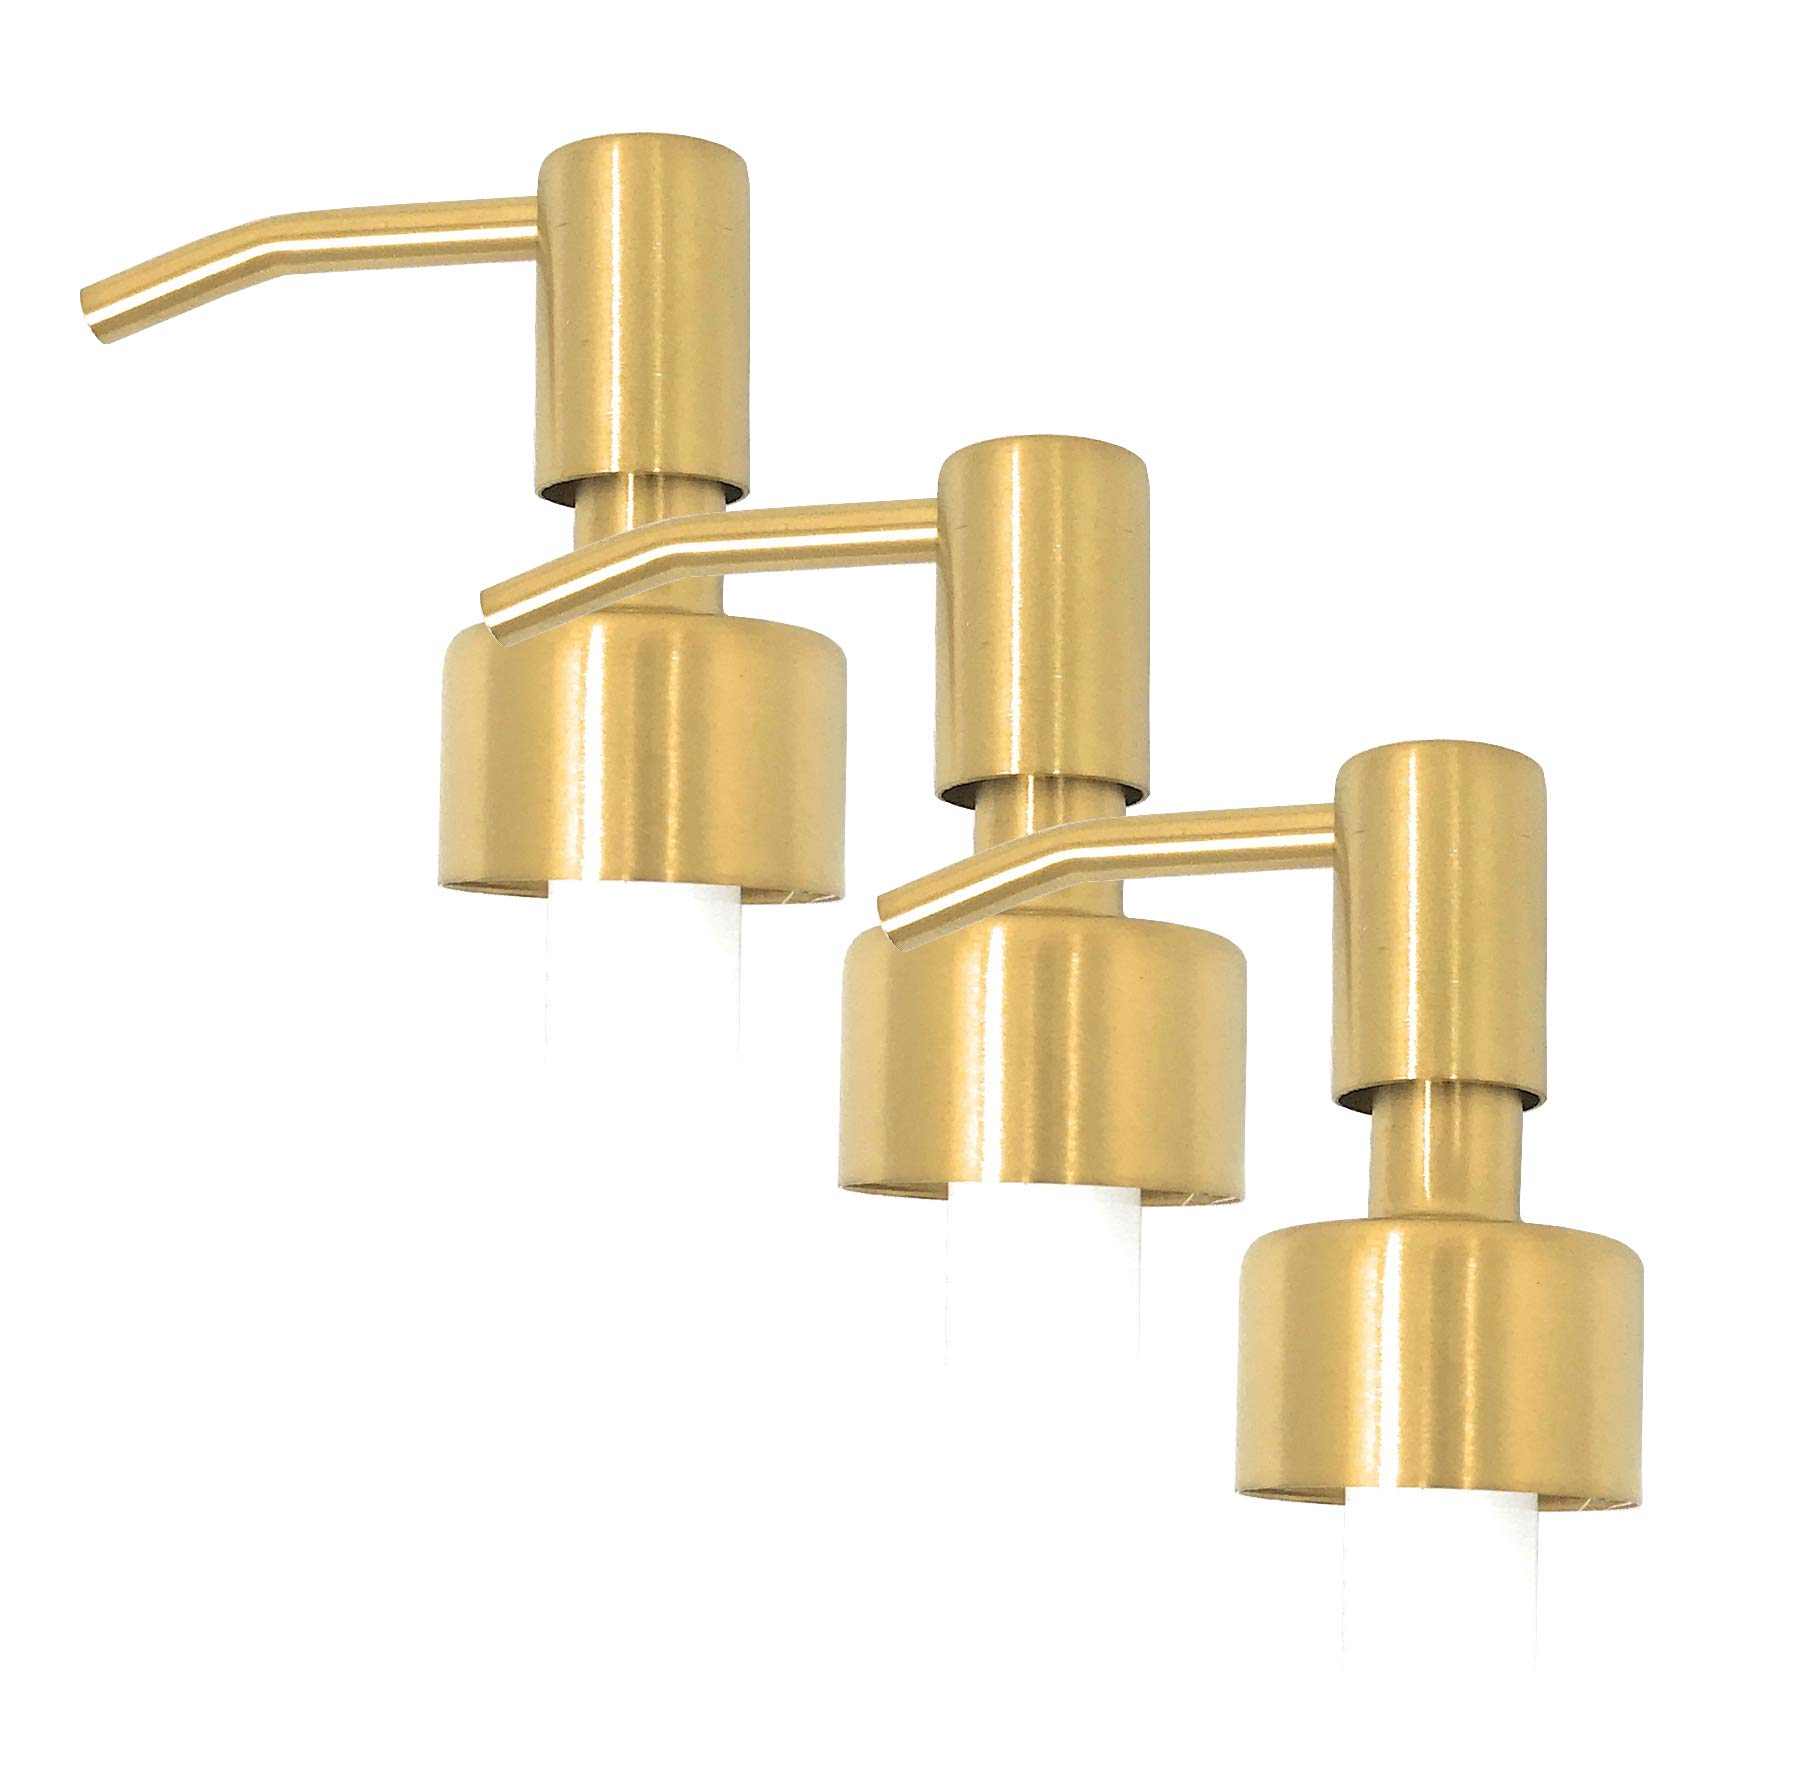 Stainless Steel Polished Brass Finish Lotion Dispenser Pump, 28/400, 2CC (Pack of 3)